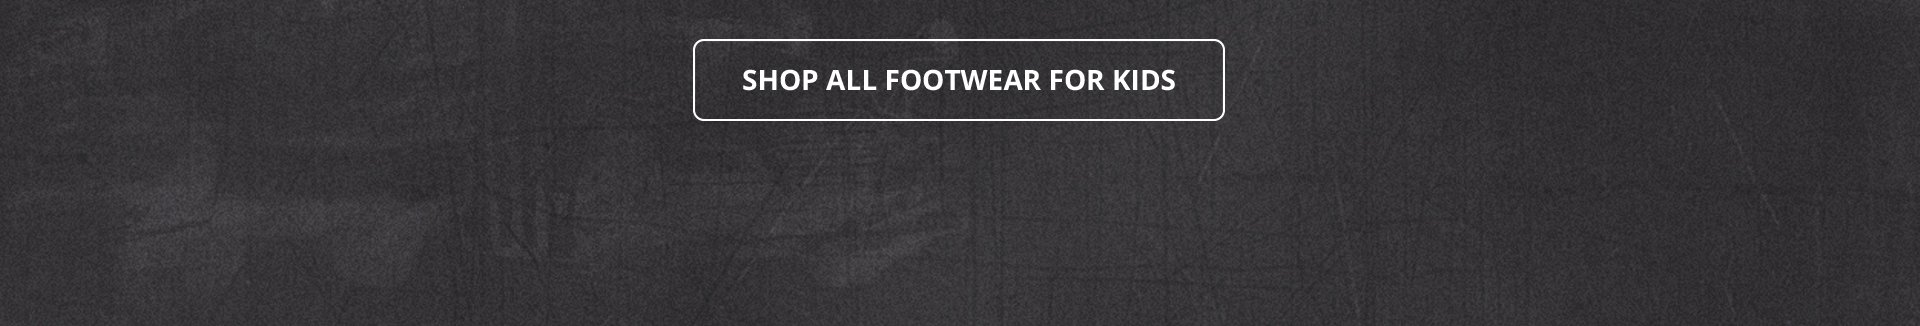 Shop all footwear for kids